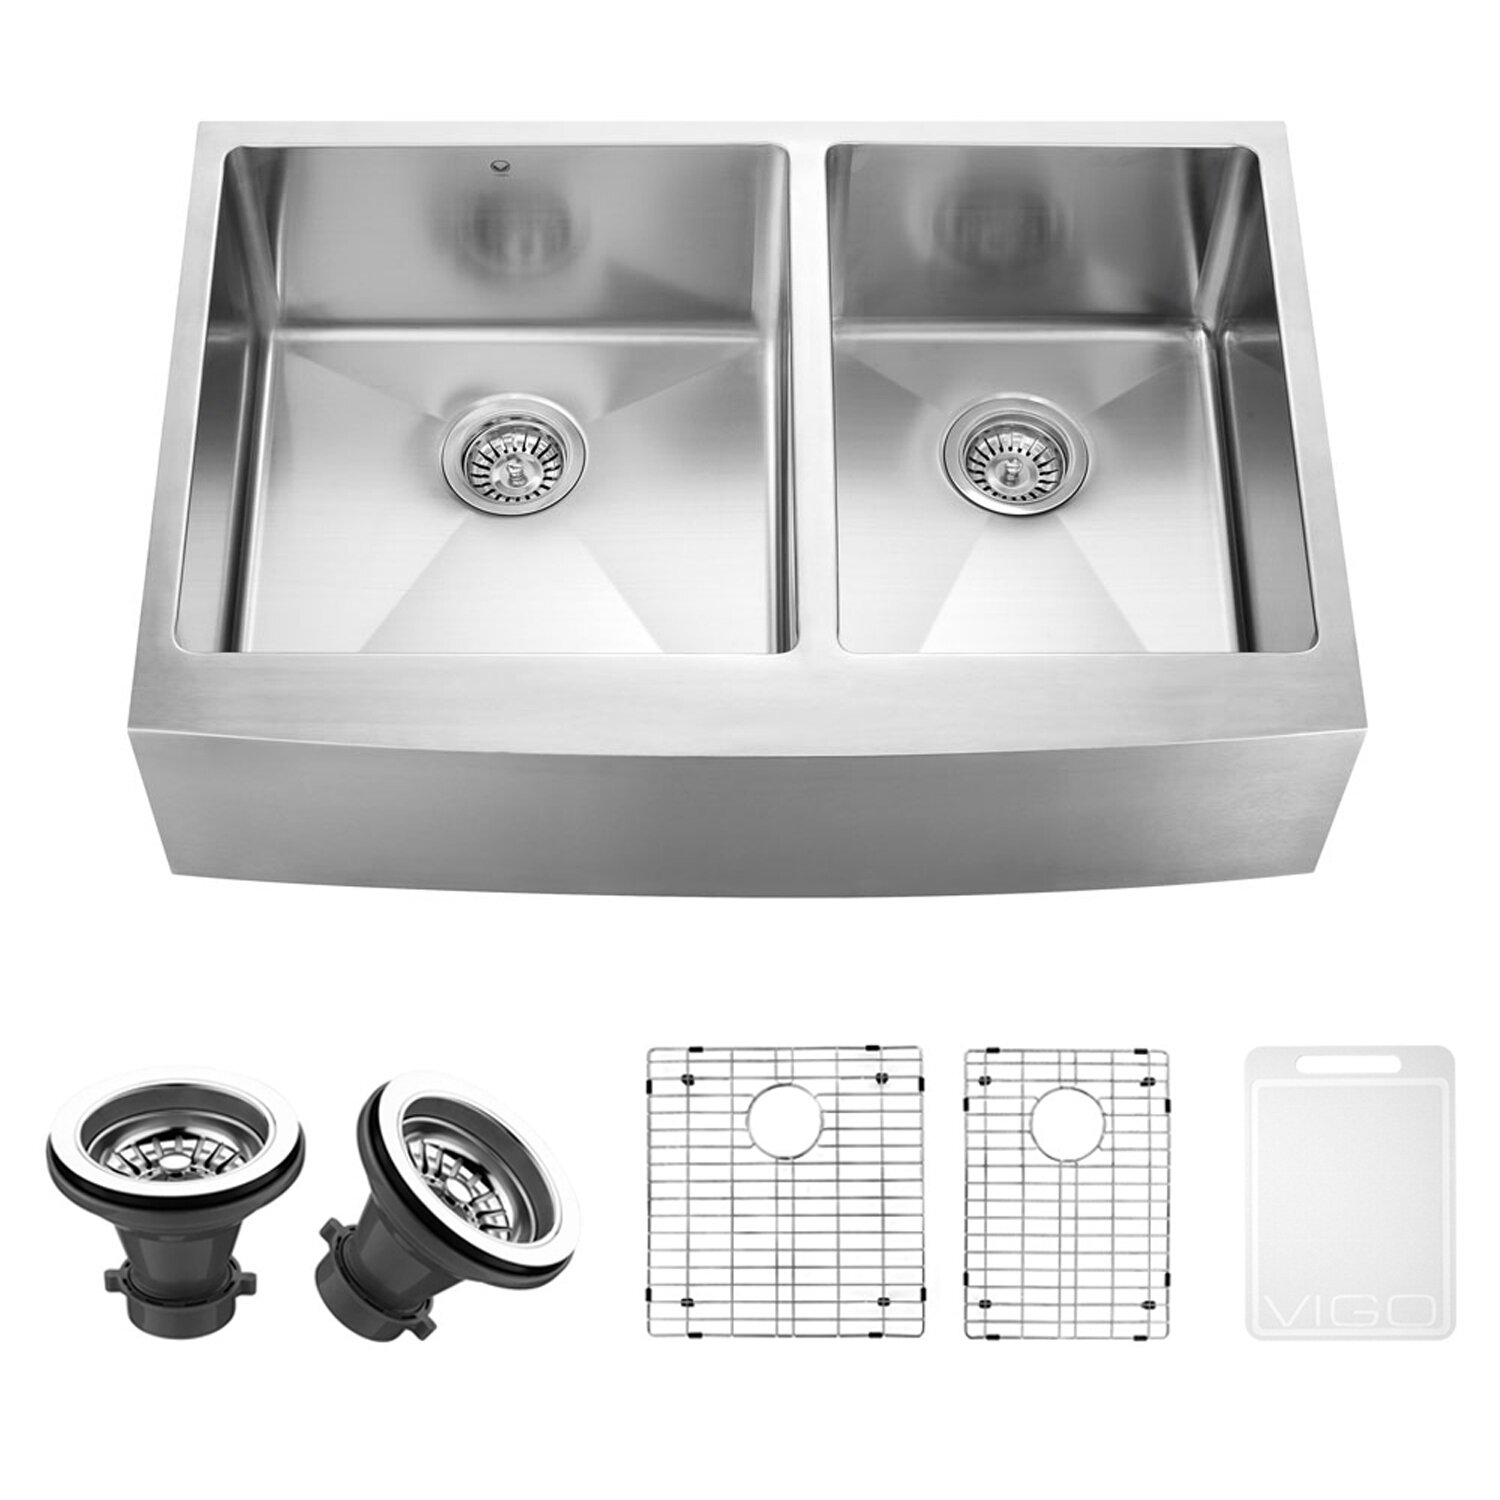 33 inch Farmhouse Apron 60/40 Double Bowl 16 Gauge Stainless Steel ...